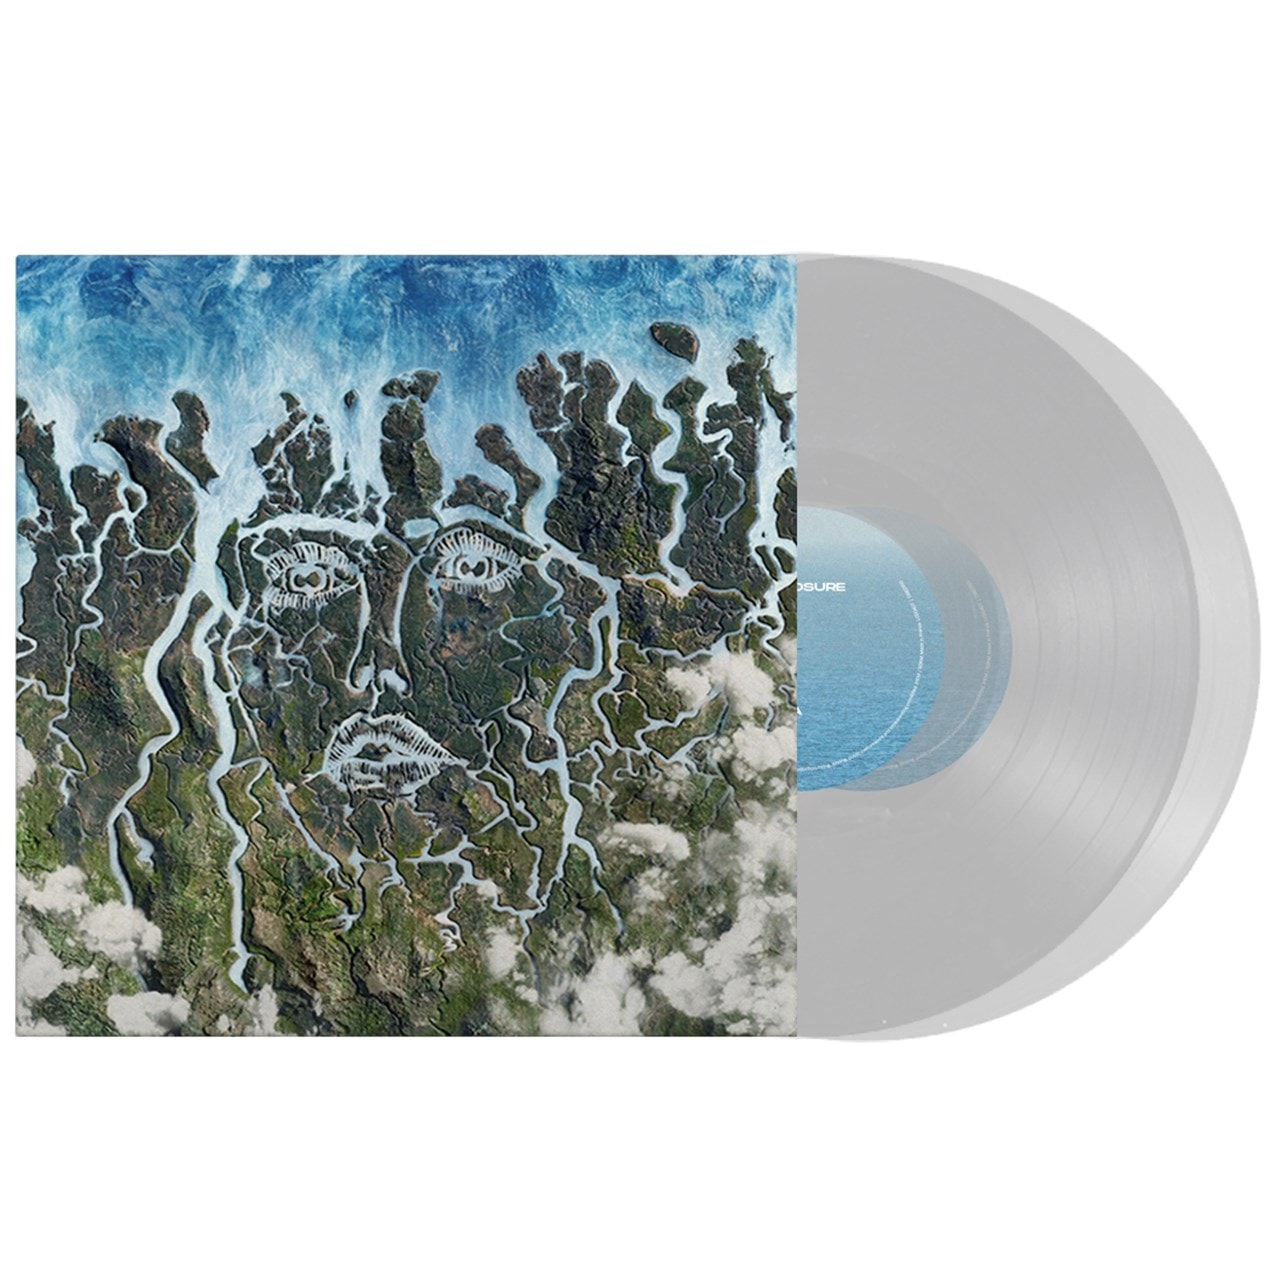 Energy - Limited Edition Clear Vinyl - 1